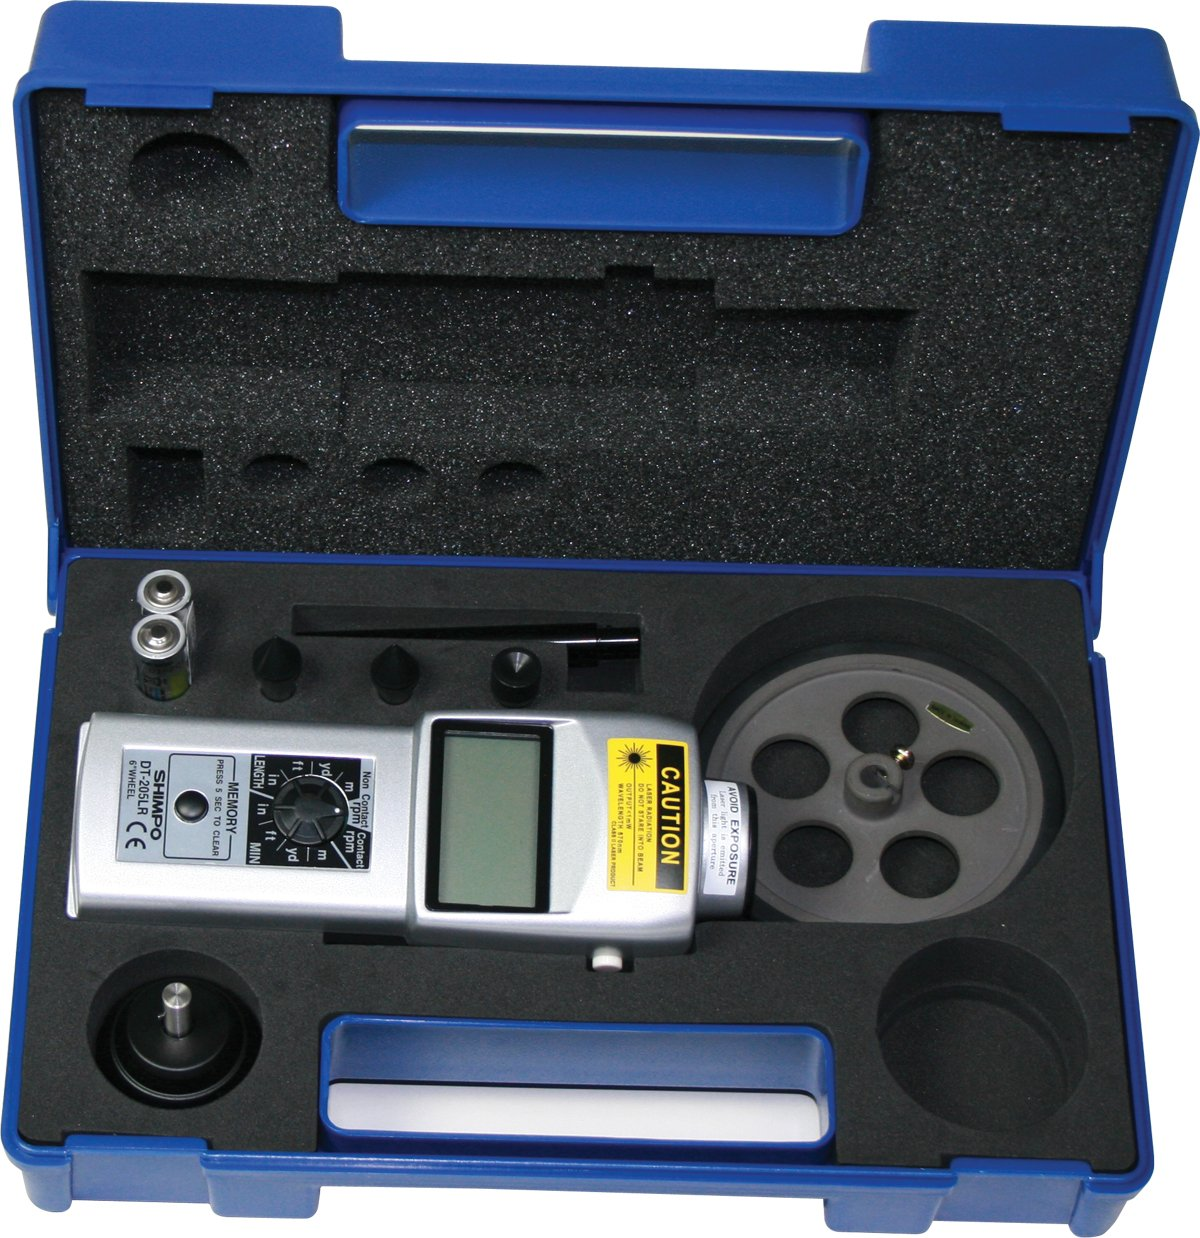 Shimpo DT-205LR Dual Contact//Non-Contact Handheld Tachometer with 6 Wheel LCD Display 6-99999rpm Range